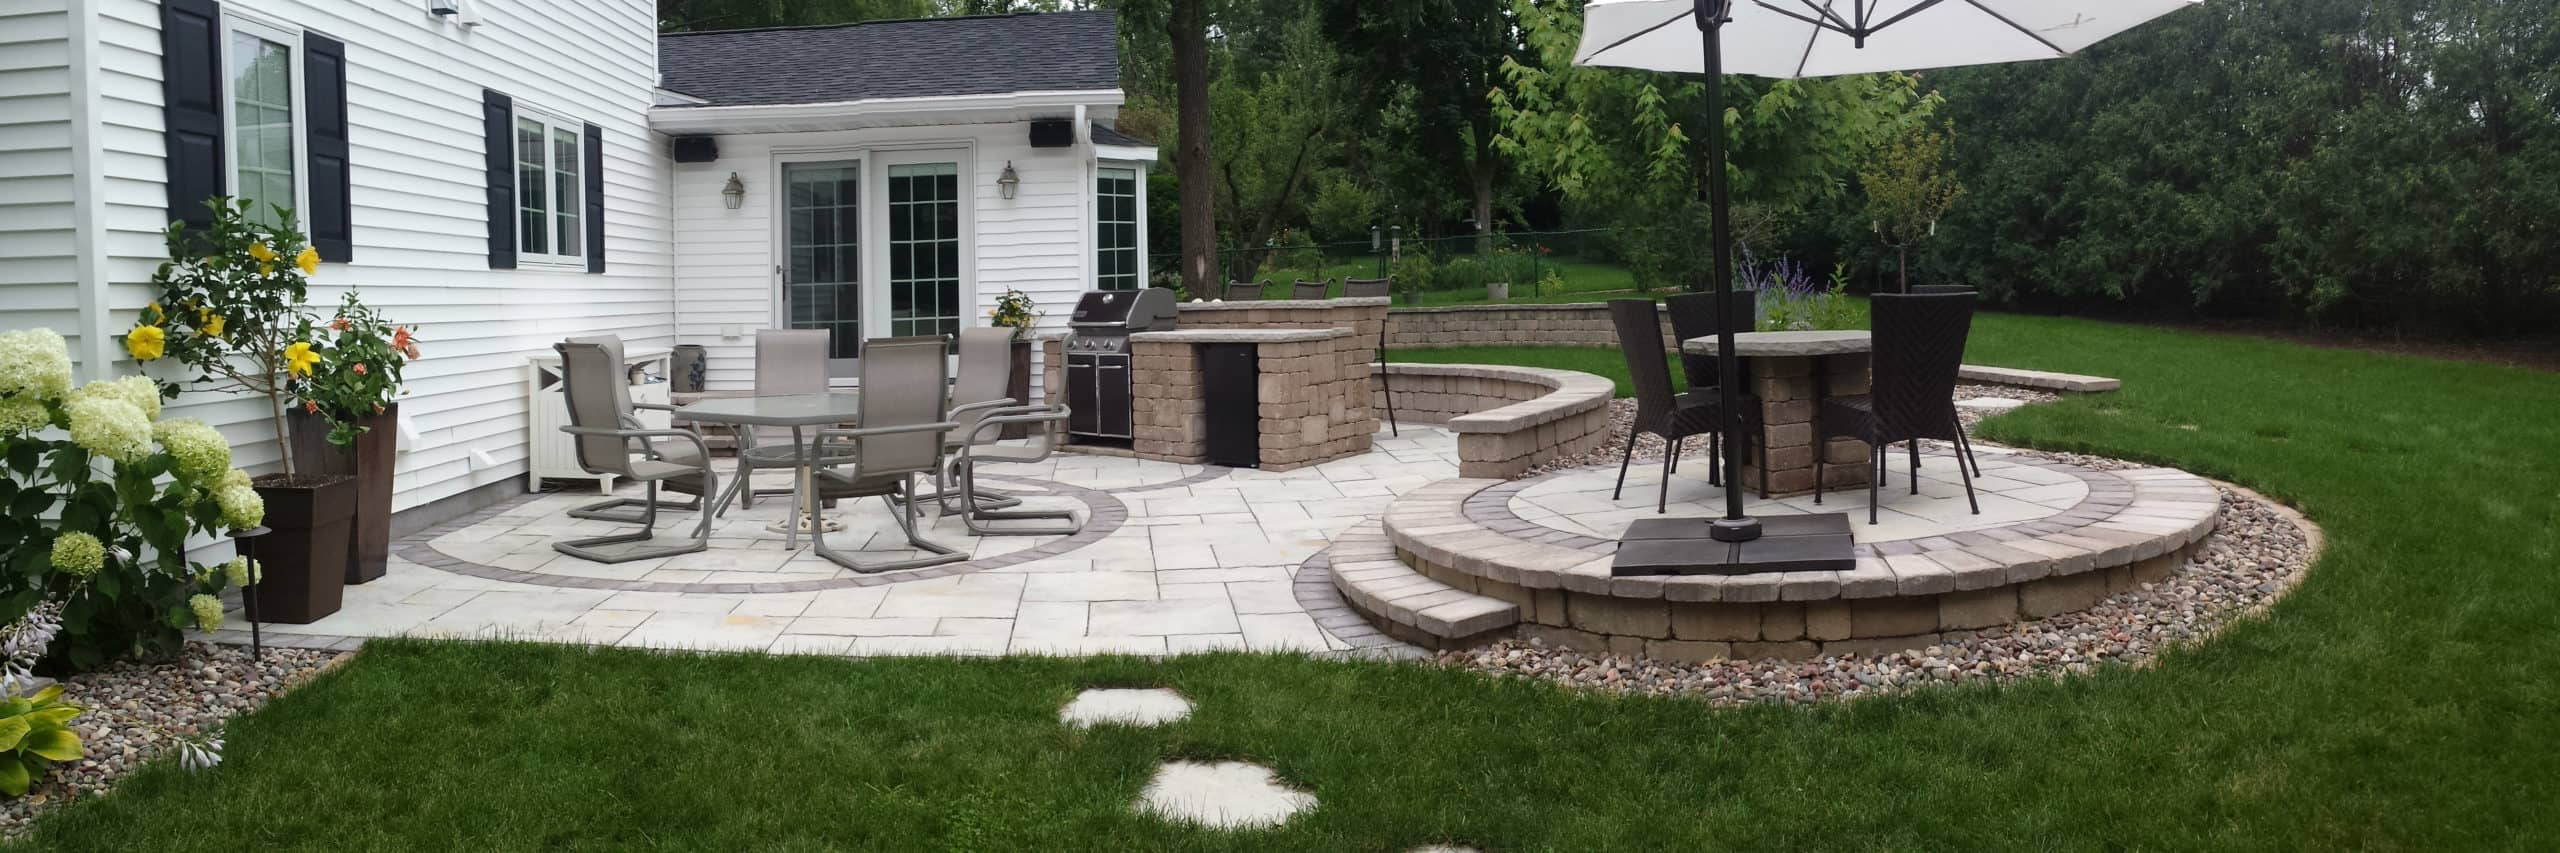 Backyard Transformation after